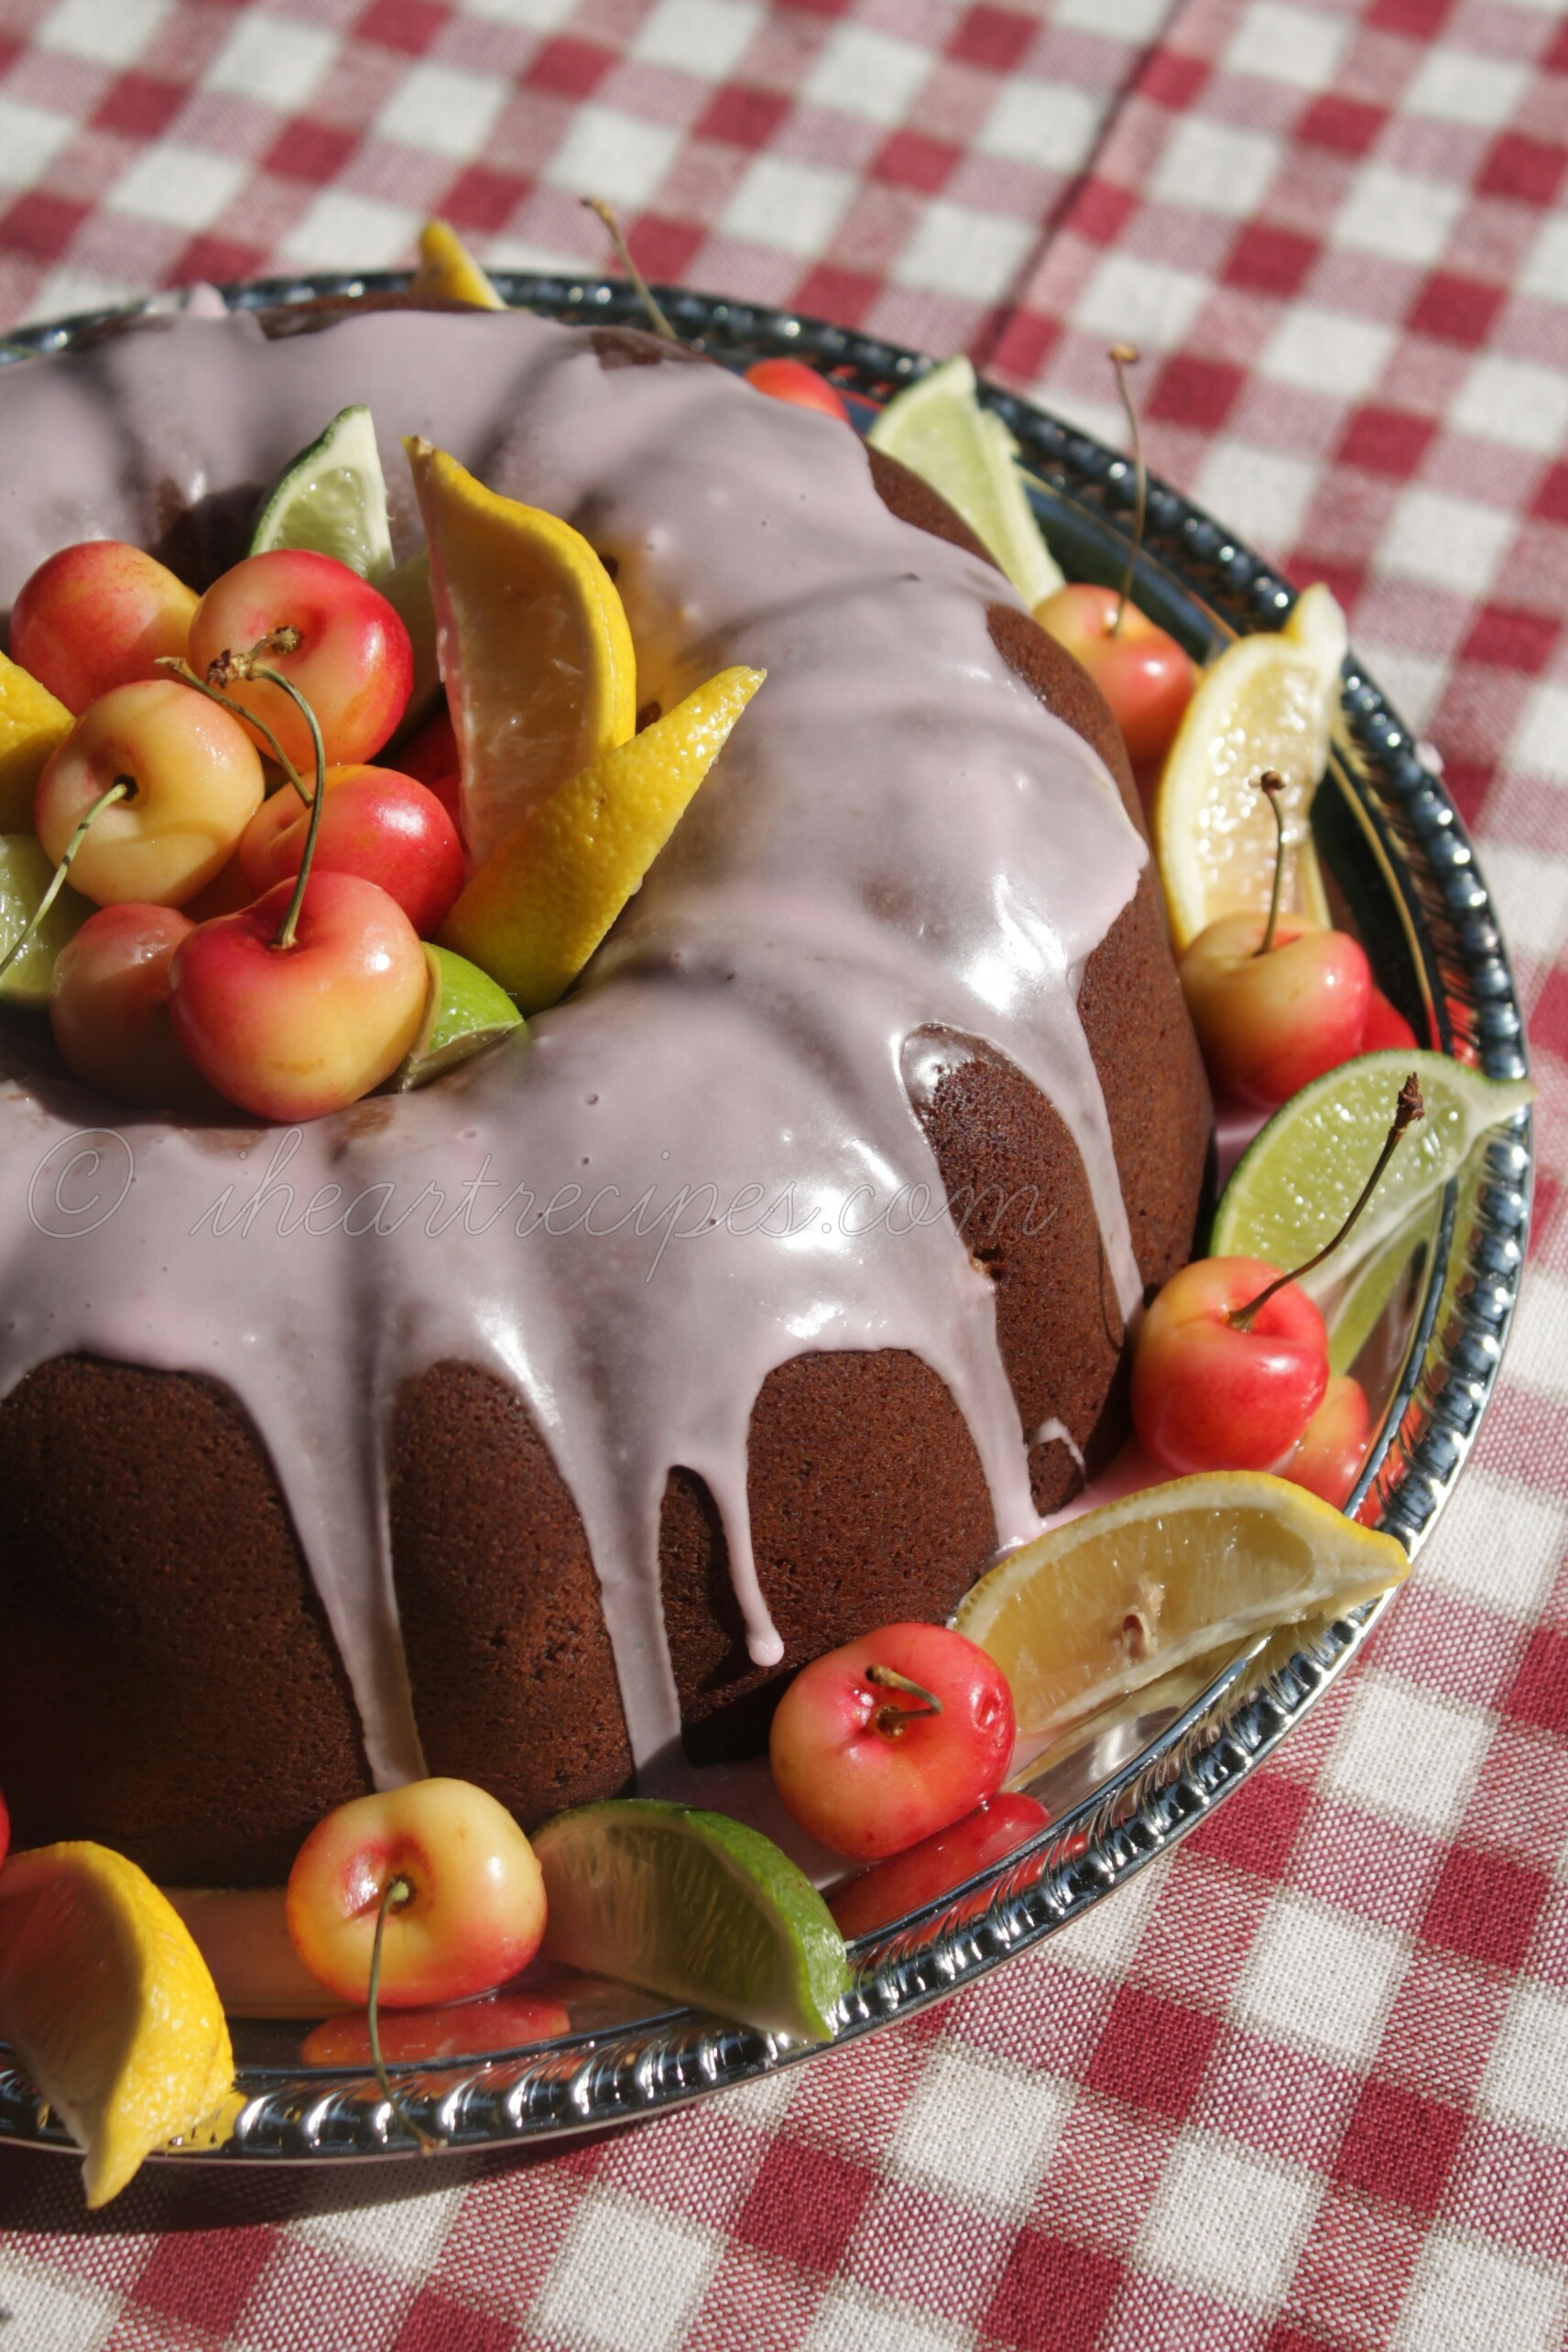 A sweet vanilla glaze coats this moist cherry 7up cake